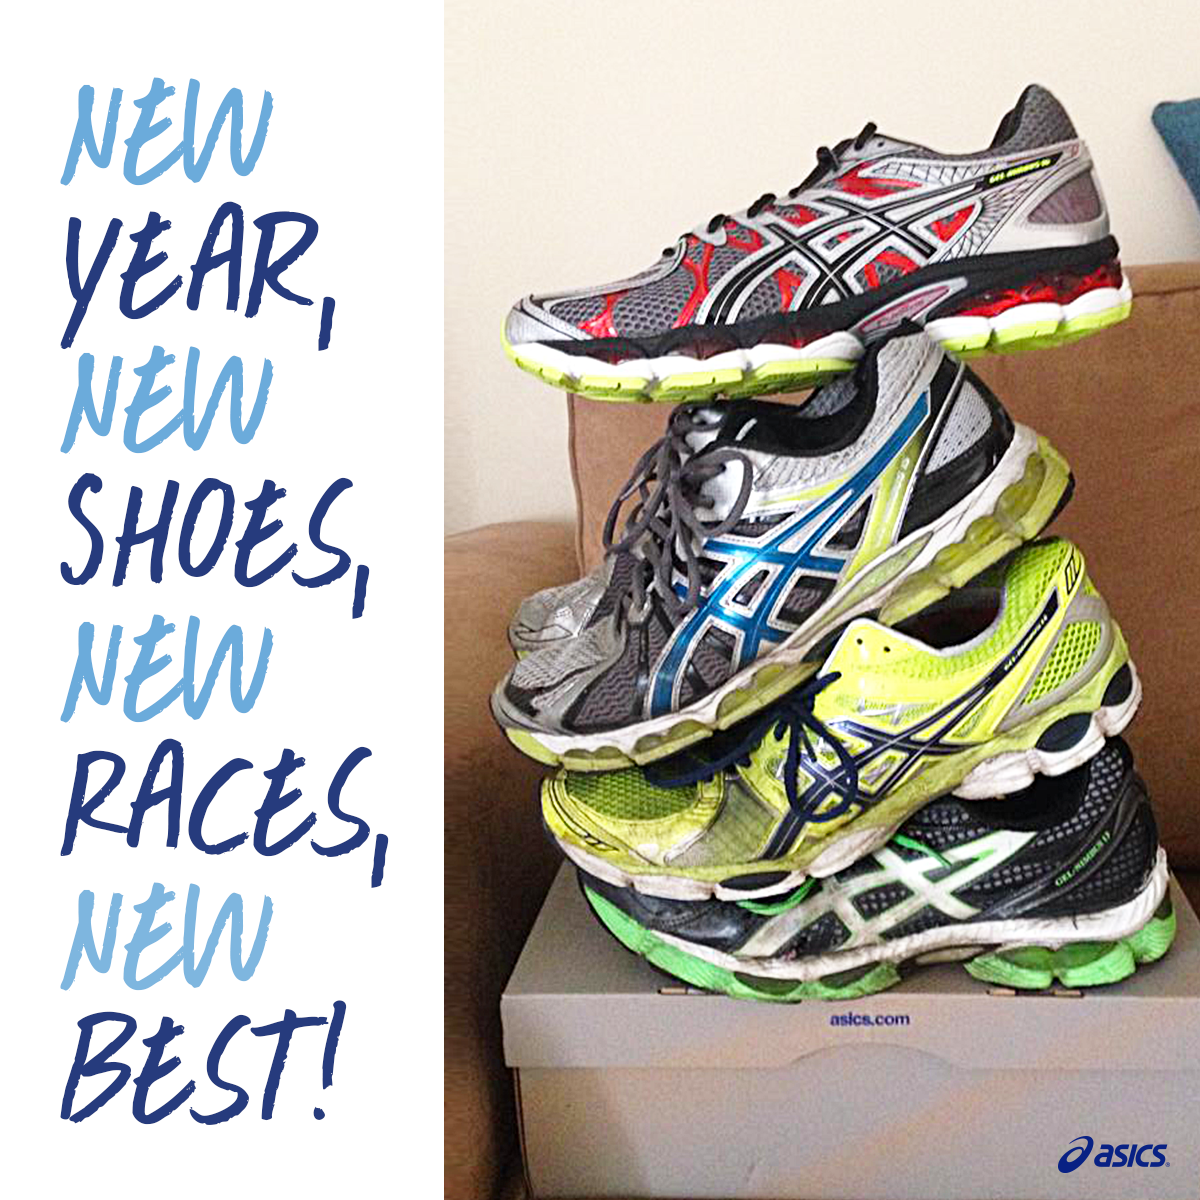 Newyear New Shoes New Races New Best Myasics Mantra Thanks Fb Friend Chris B For The Photo Asics Running Shoes Asics